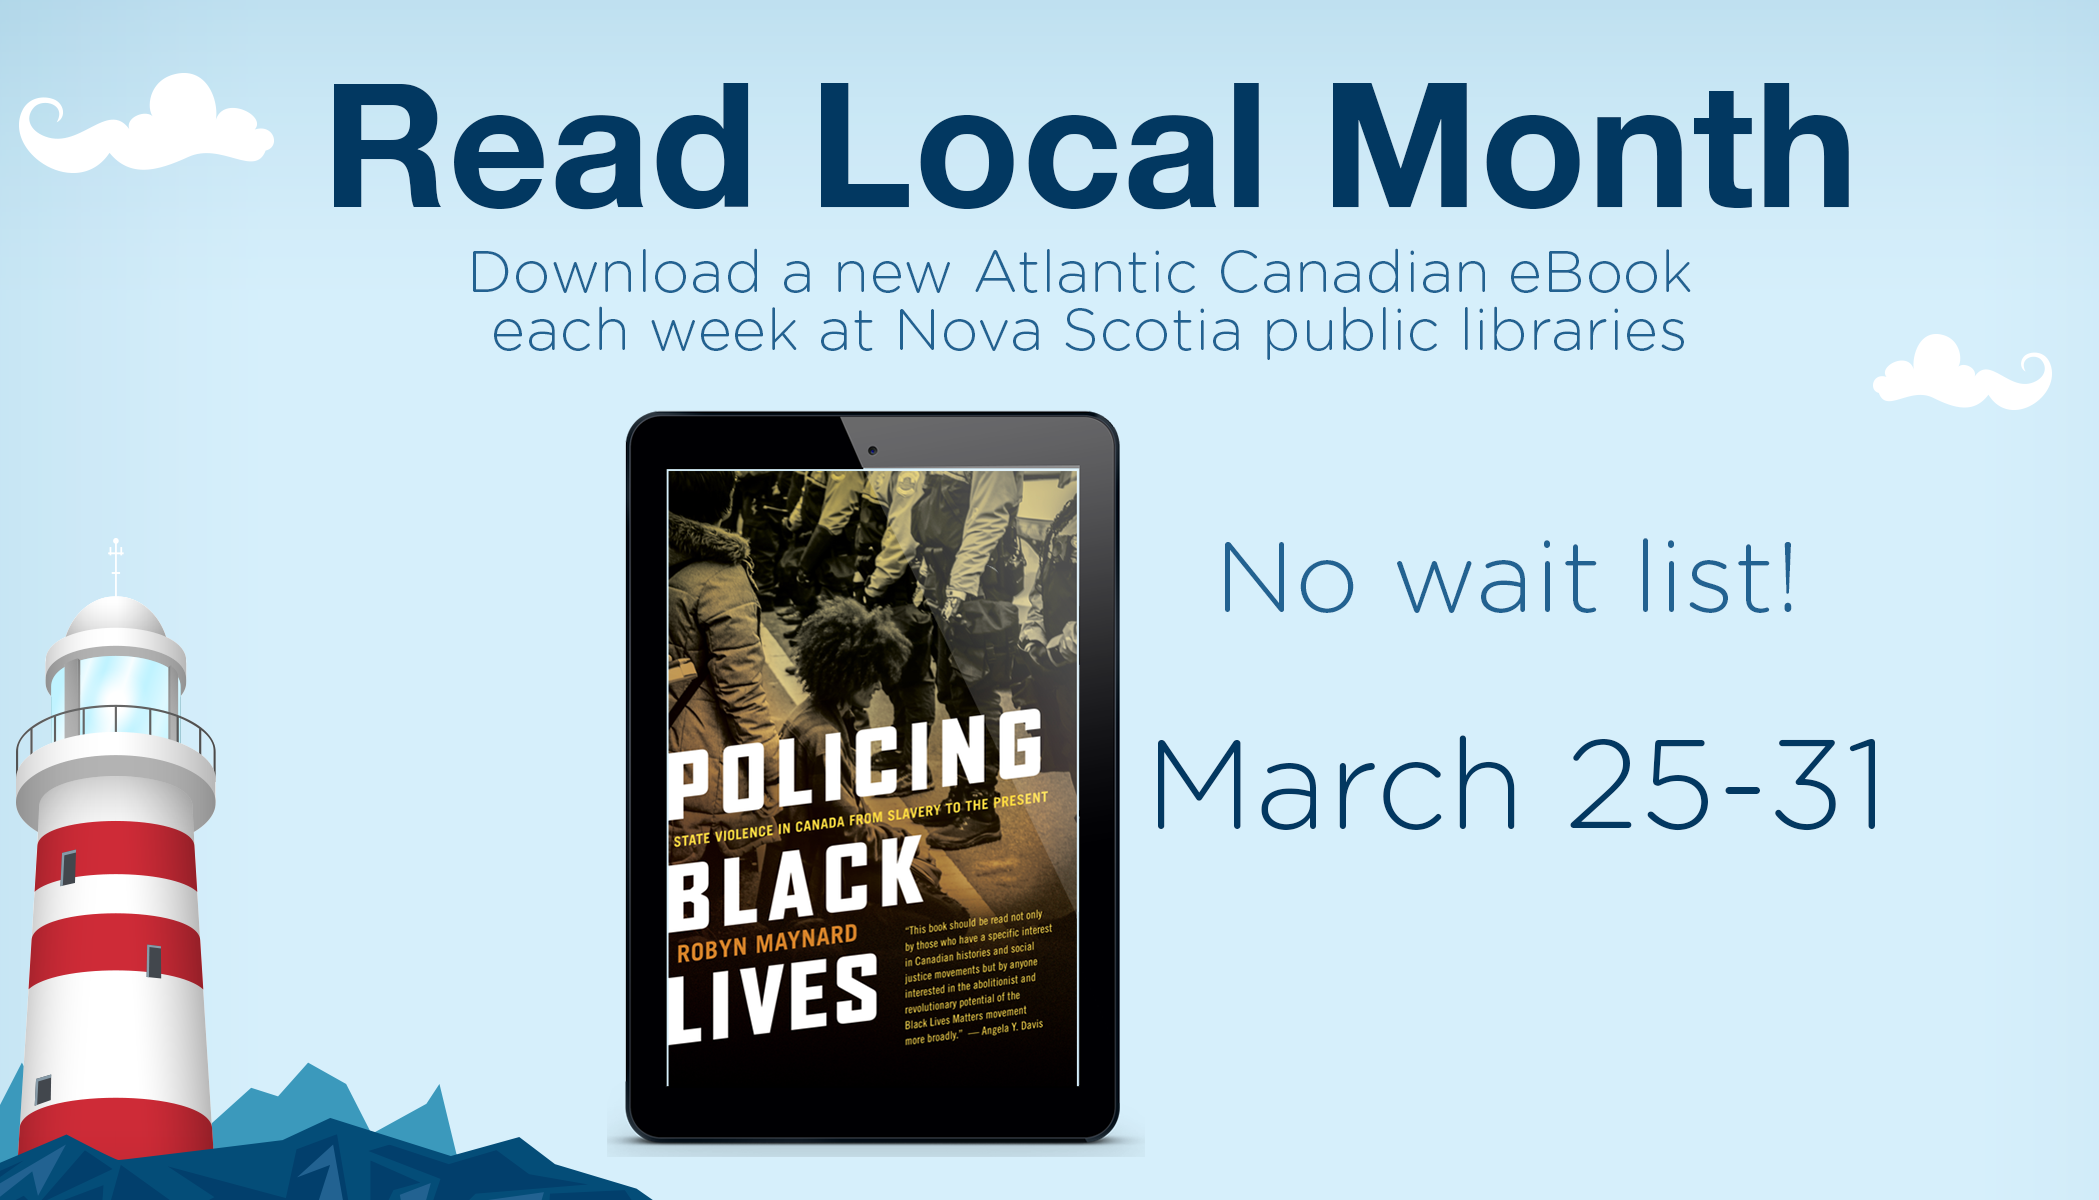 Read Local Month: Policing Black Lives